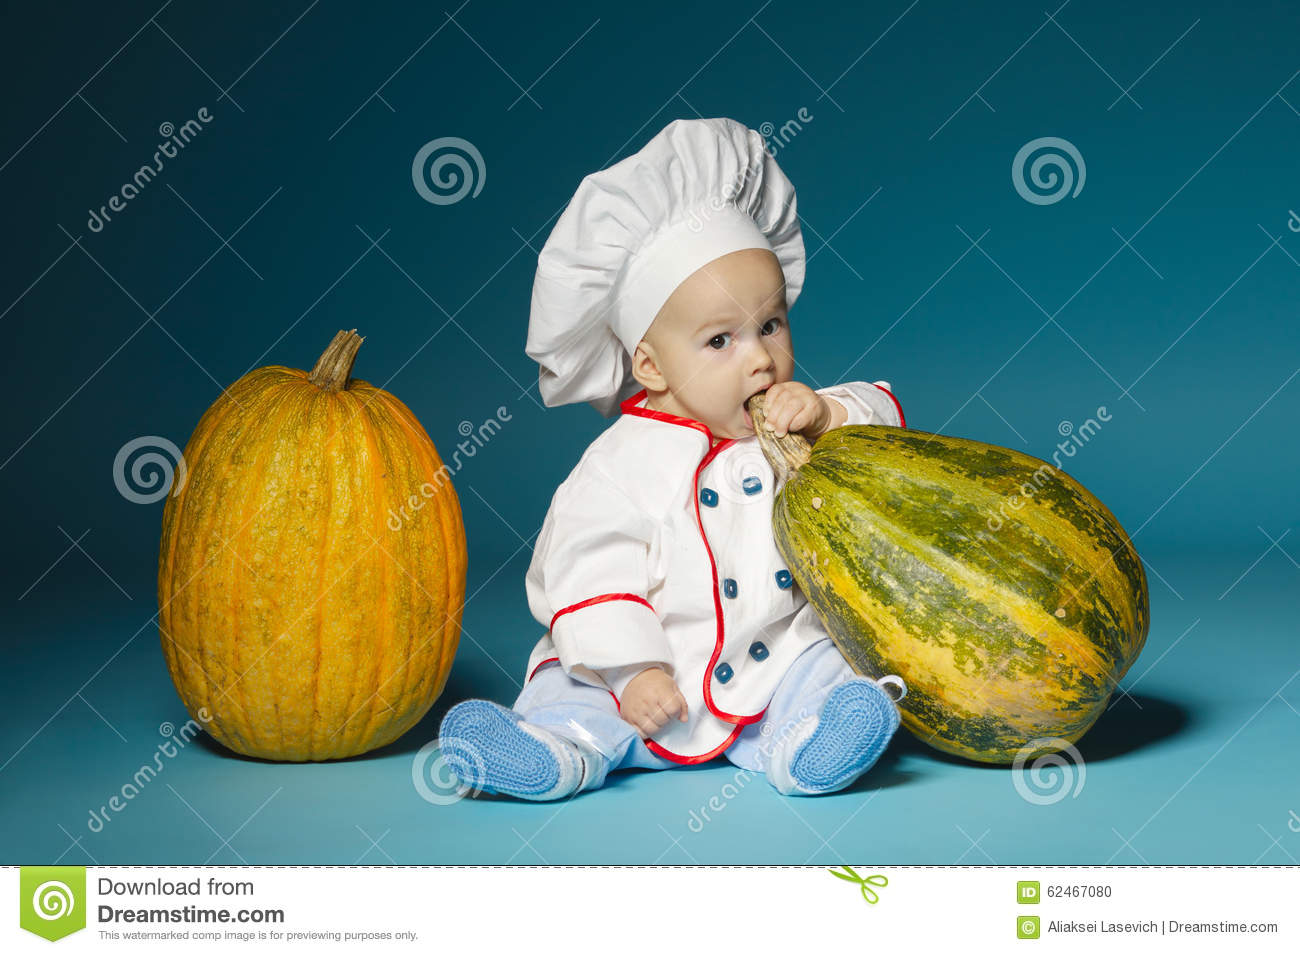 Funny baby with cook costume holds pumpkin